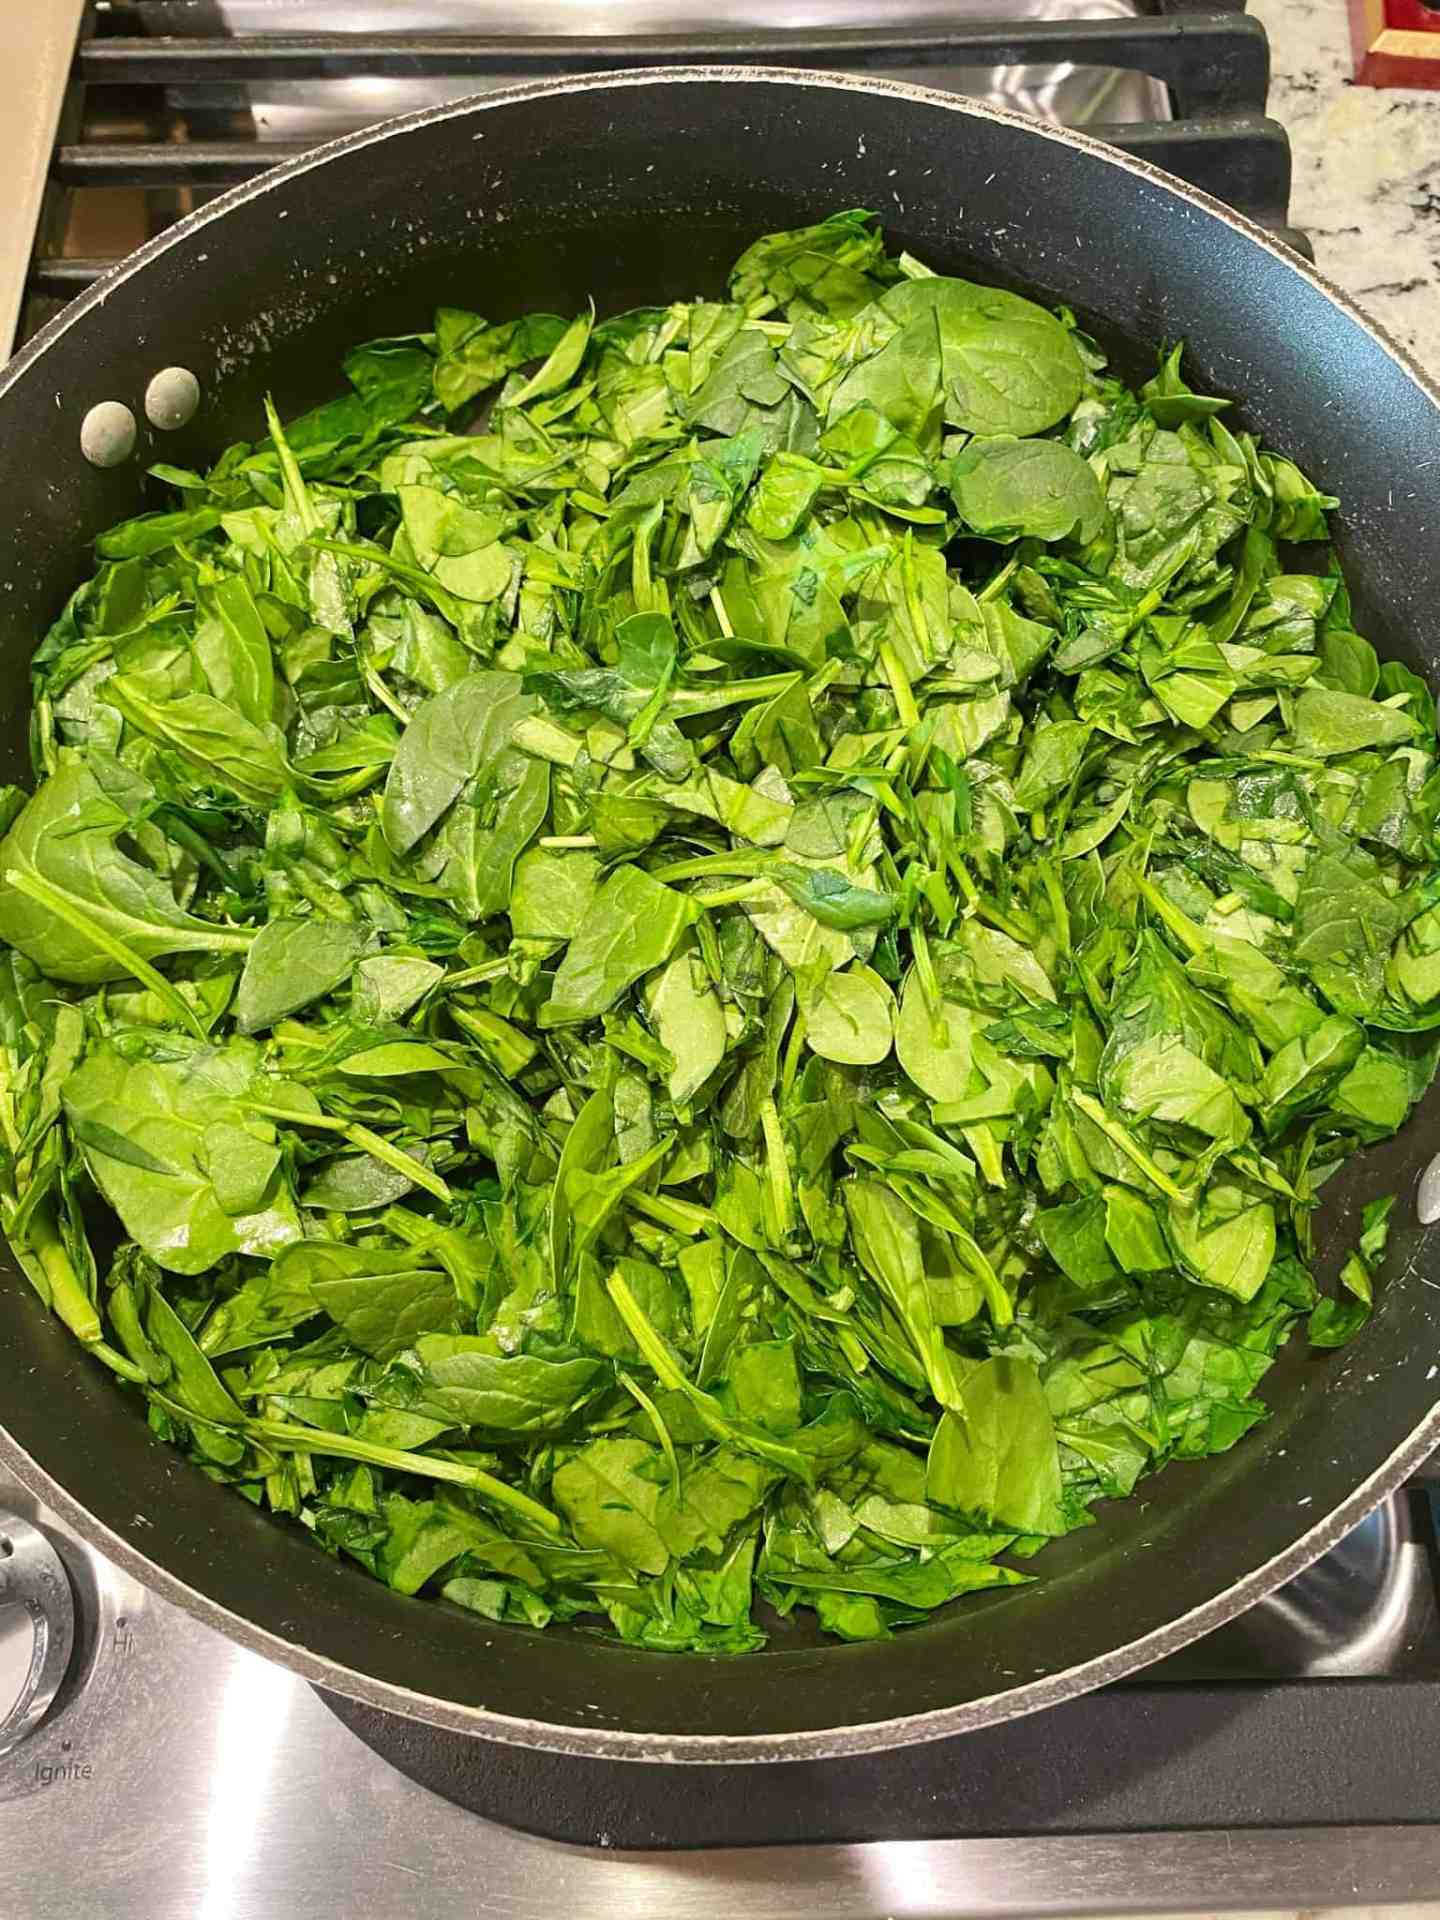 saute-spinach-in-olive-oil-until-withered